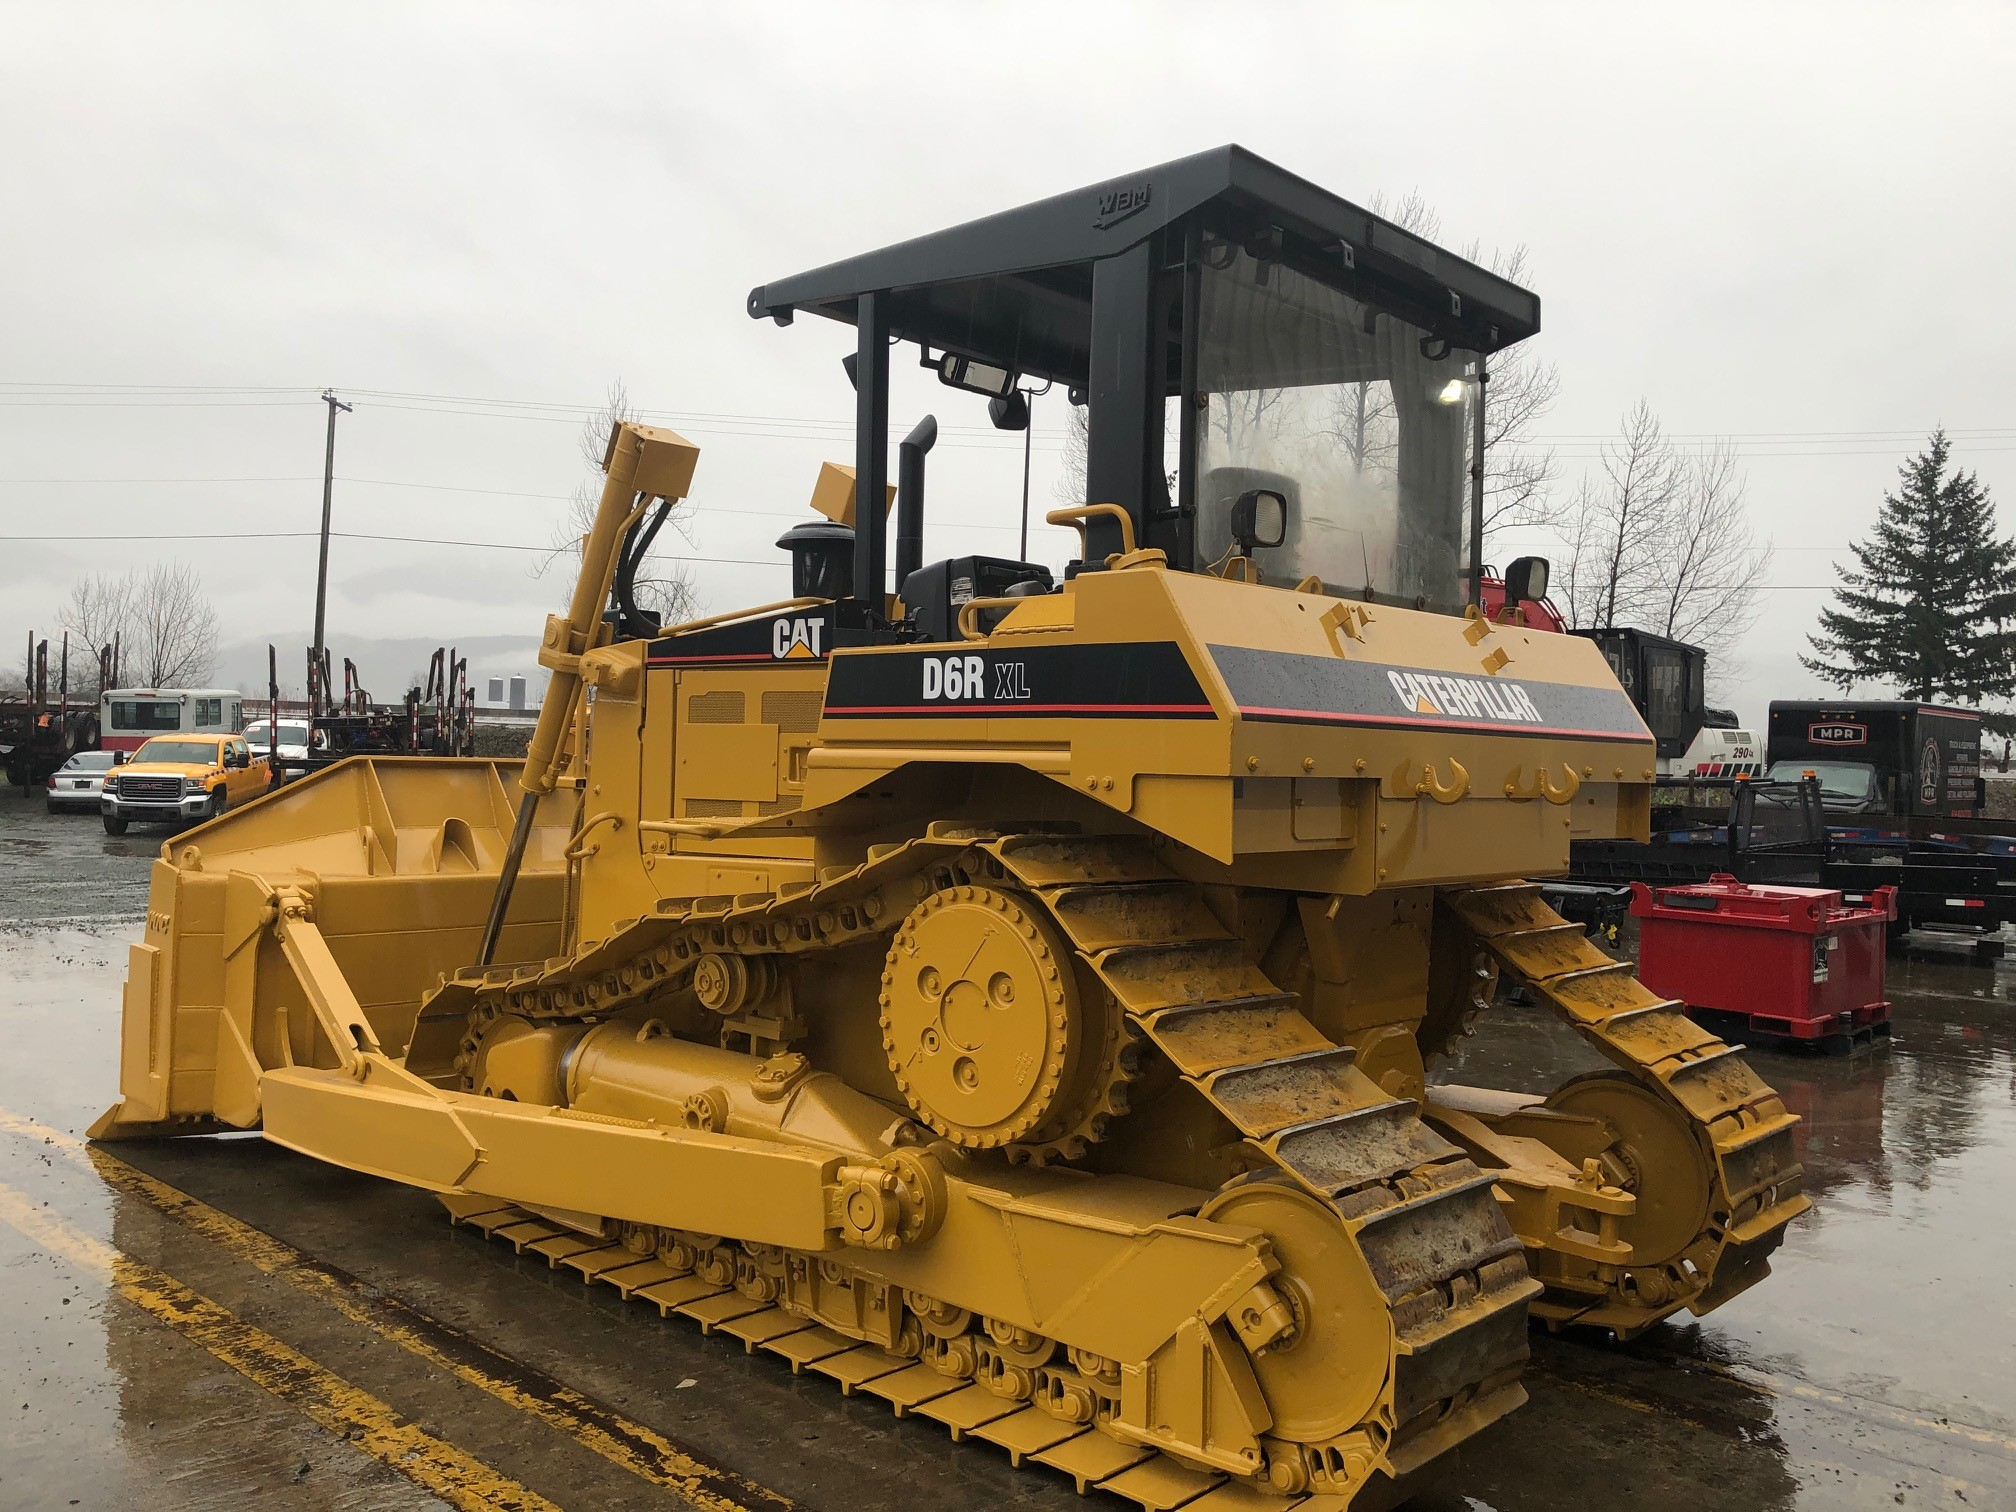 MPR, Mountain Pacific Restoration, Chilliwack BC, Restore Machines, Truck Repairs, Truck Restoration, mechanical repairs, commercial truck parts, Casey Reid, Canada, MPM Group, Visit MPM Fraser Valley, Mountain Pacific Mechanical